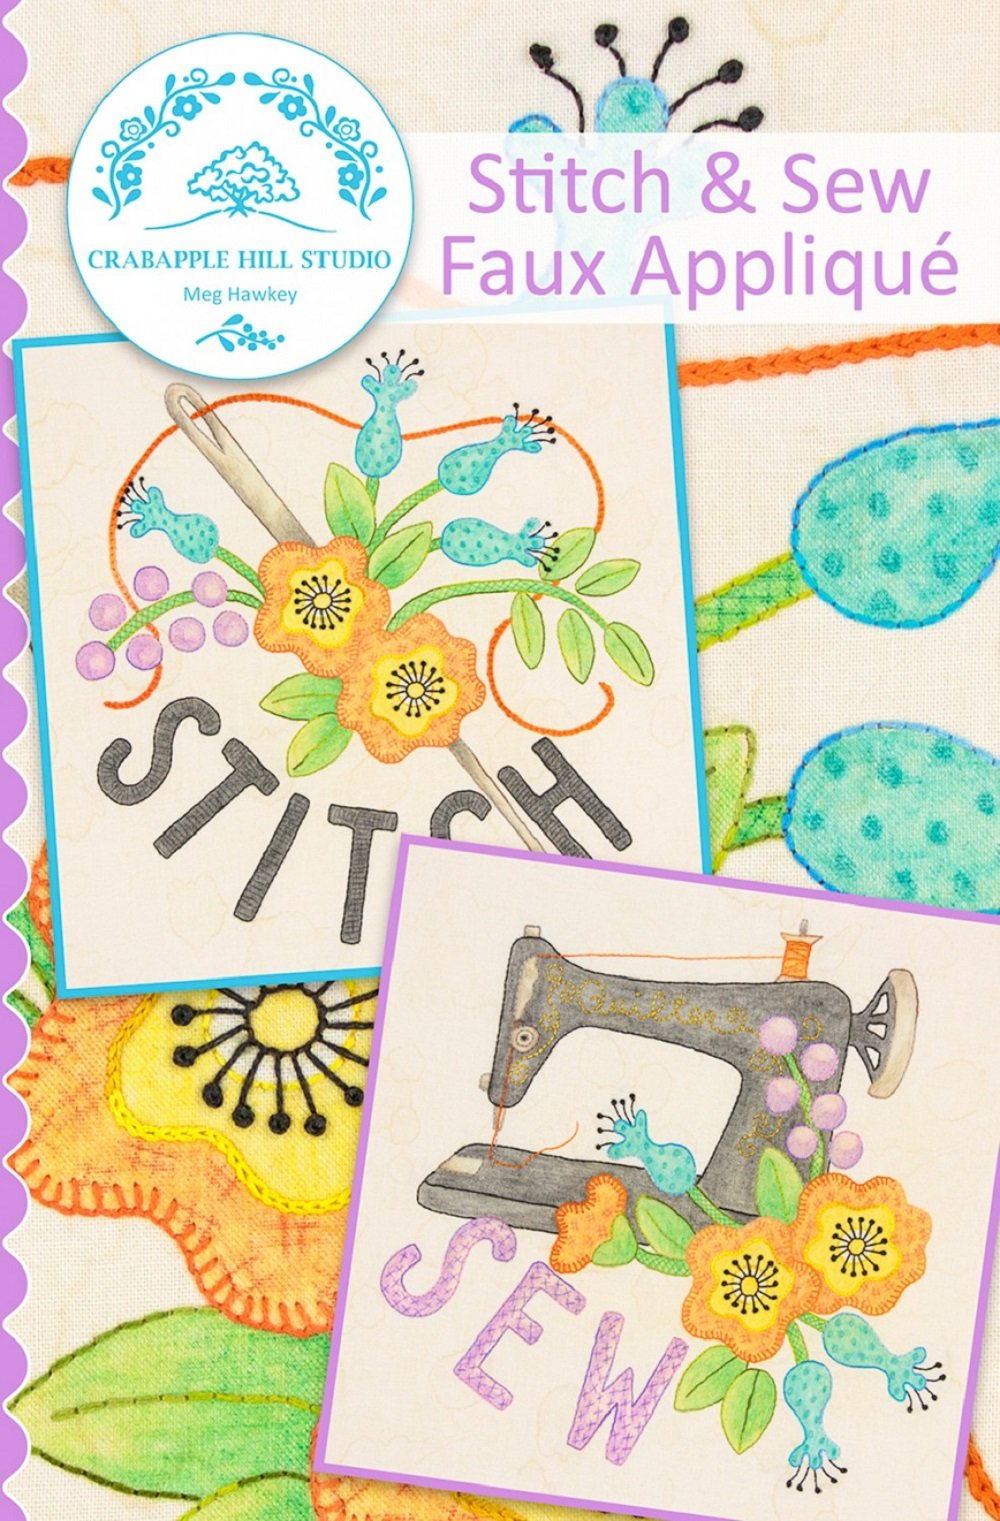 Crabapple Hill - Stitch & Sew Faux Applique Pattern with Cosmos Floss Kit